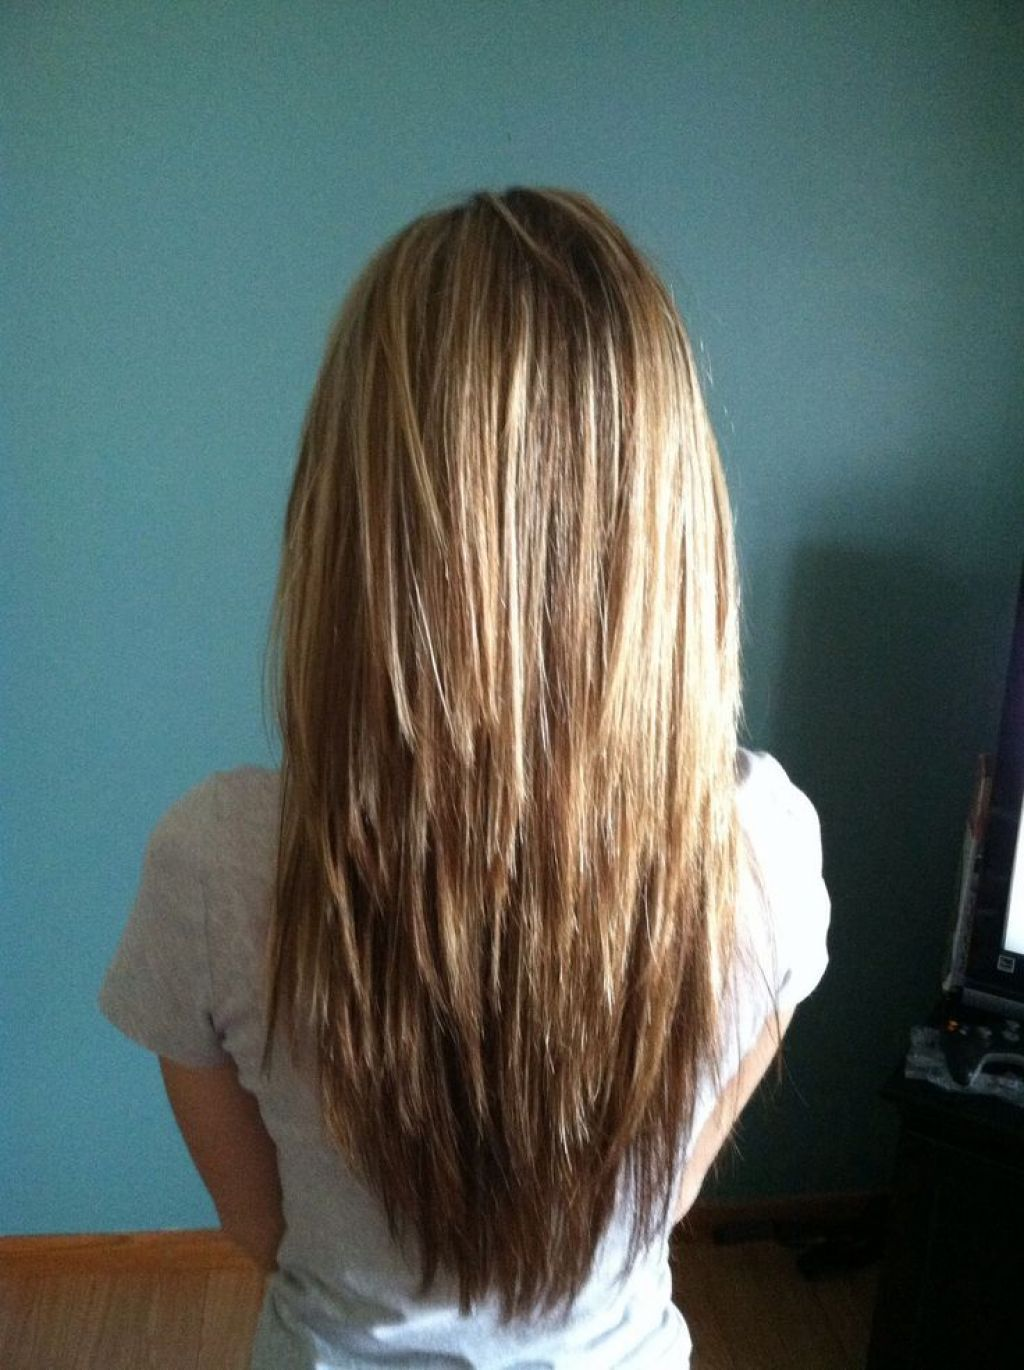 11 Casual Hairstyles For Long Hair - Hairstyles 11  Long thin